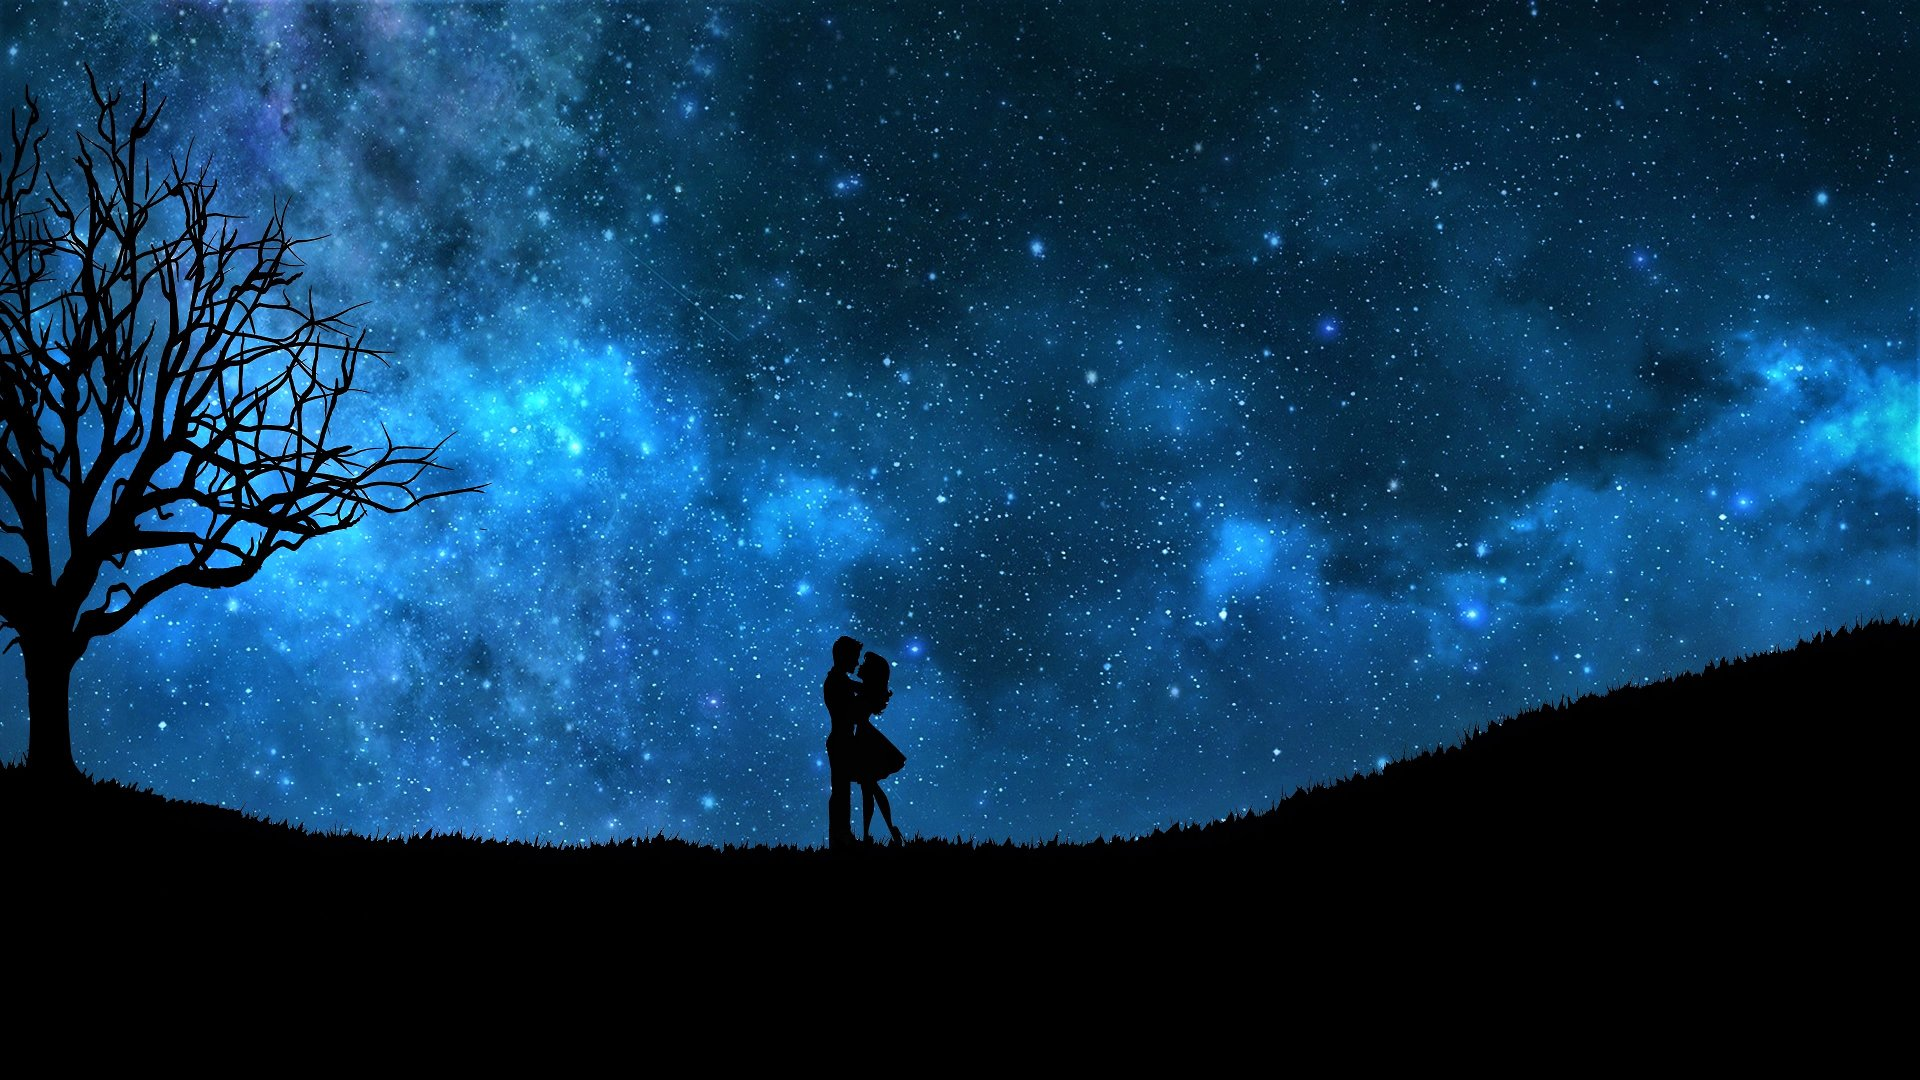 milky way background romantic couple wallpaper